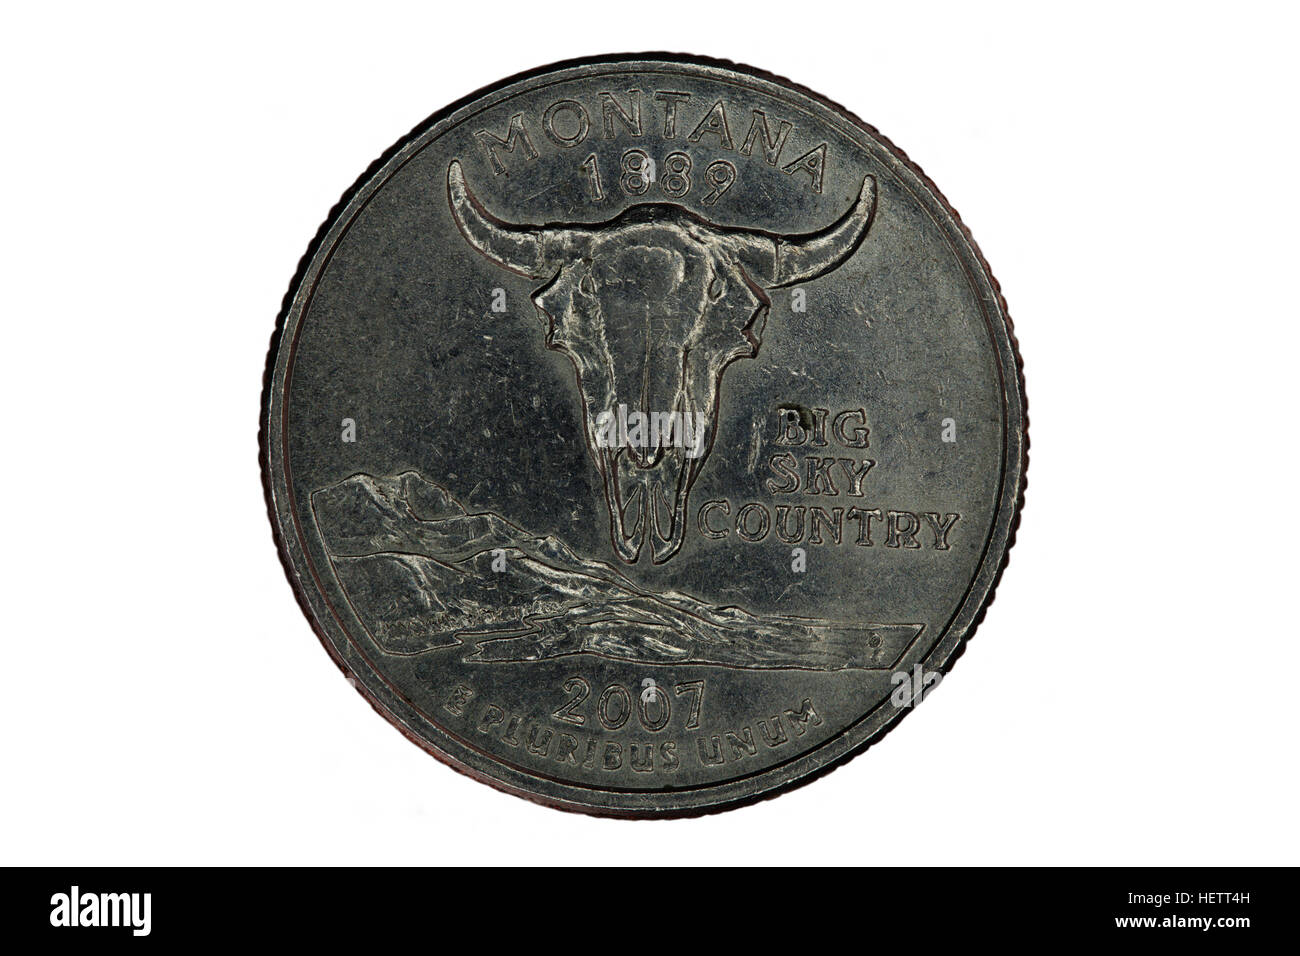 United States Quarter For Montana Tail Side Against White Background Stock Photo